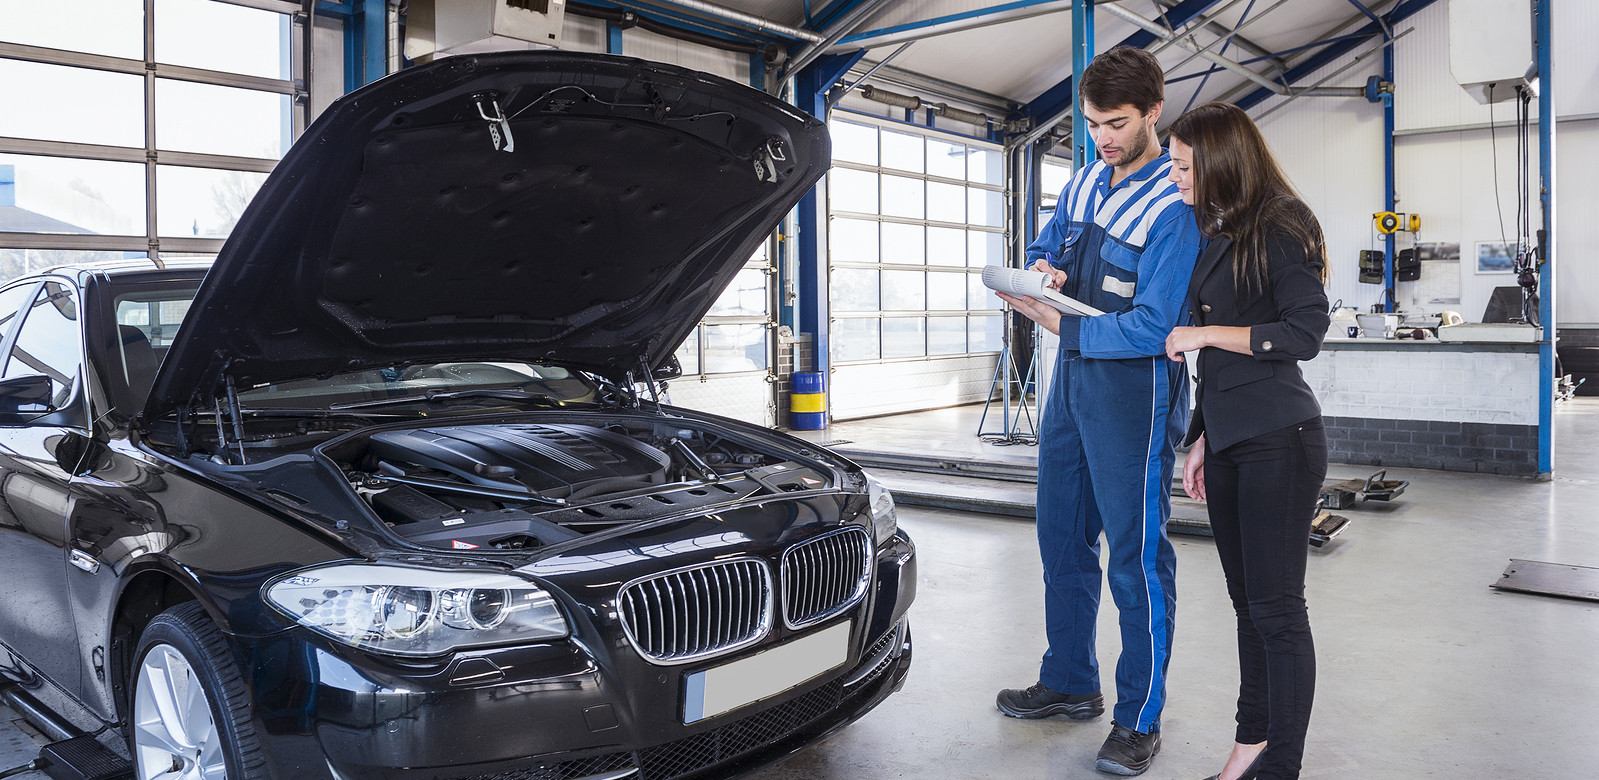 Mechanic with clipboard and and female customer standing to right of black BMW with bonnet open.